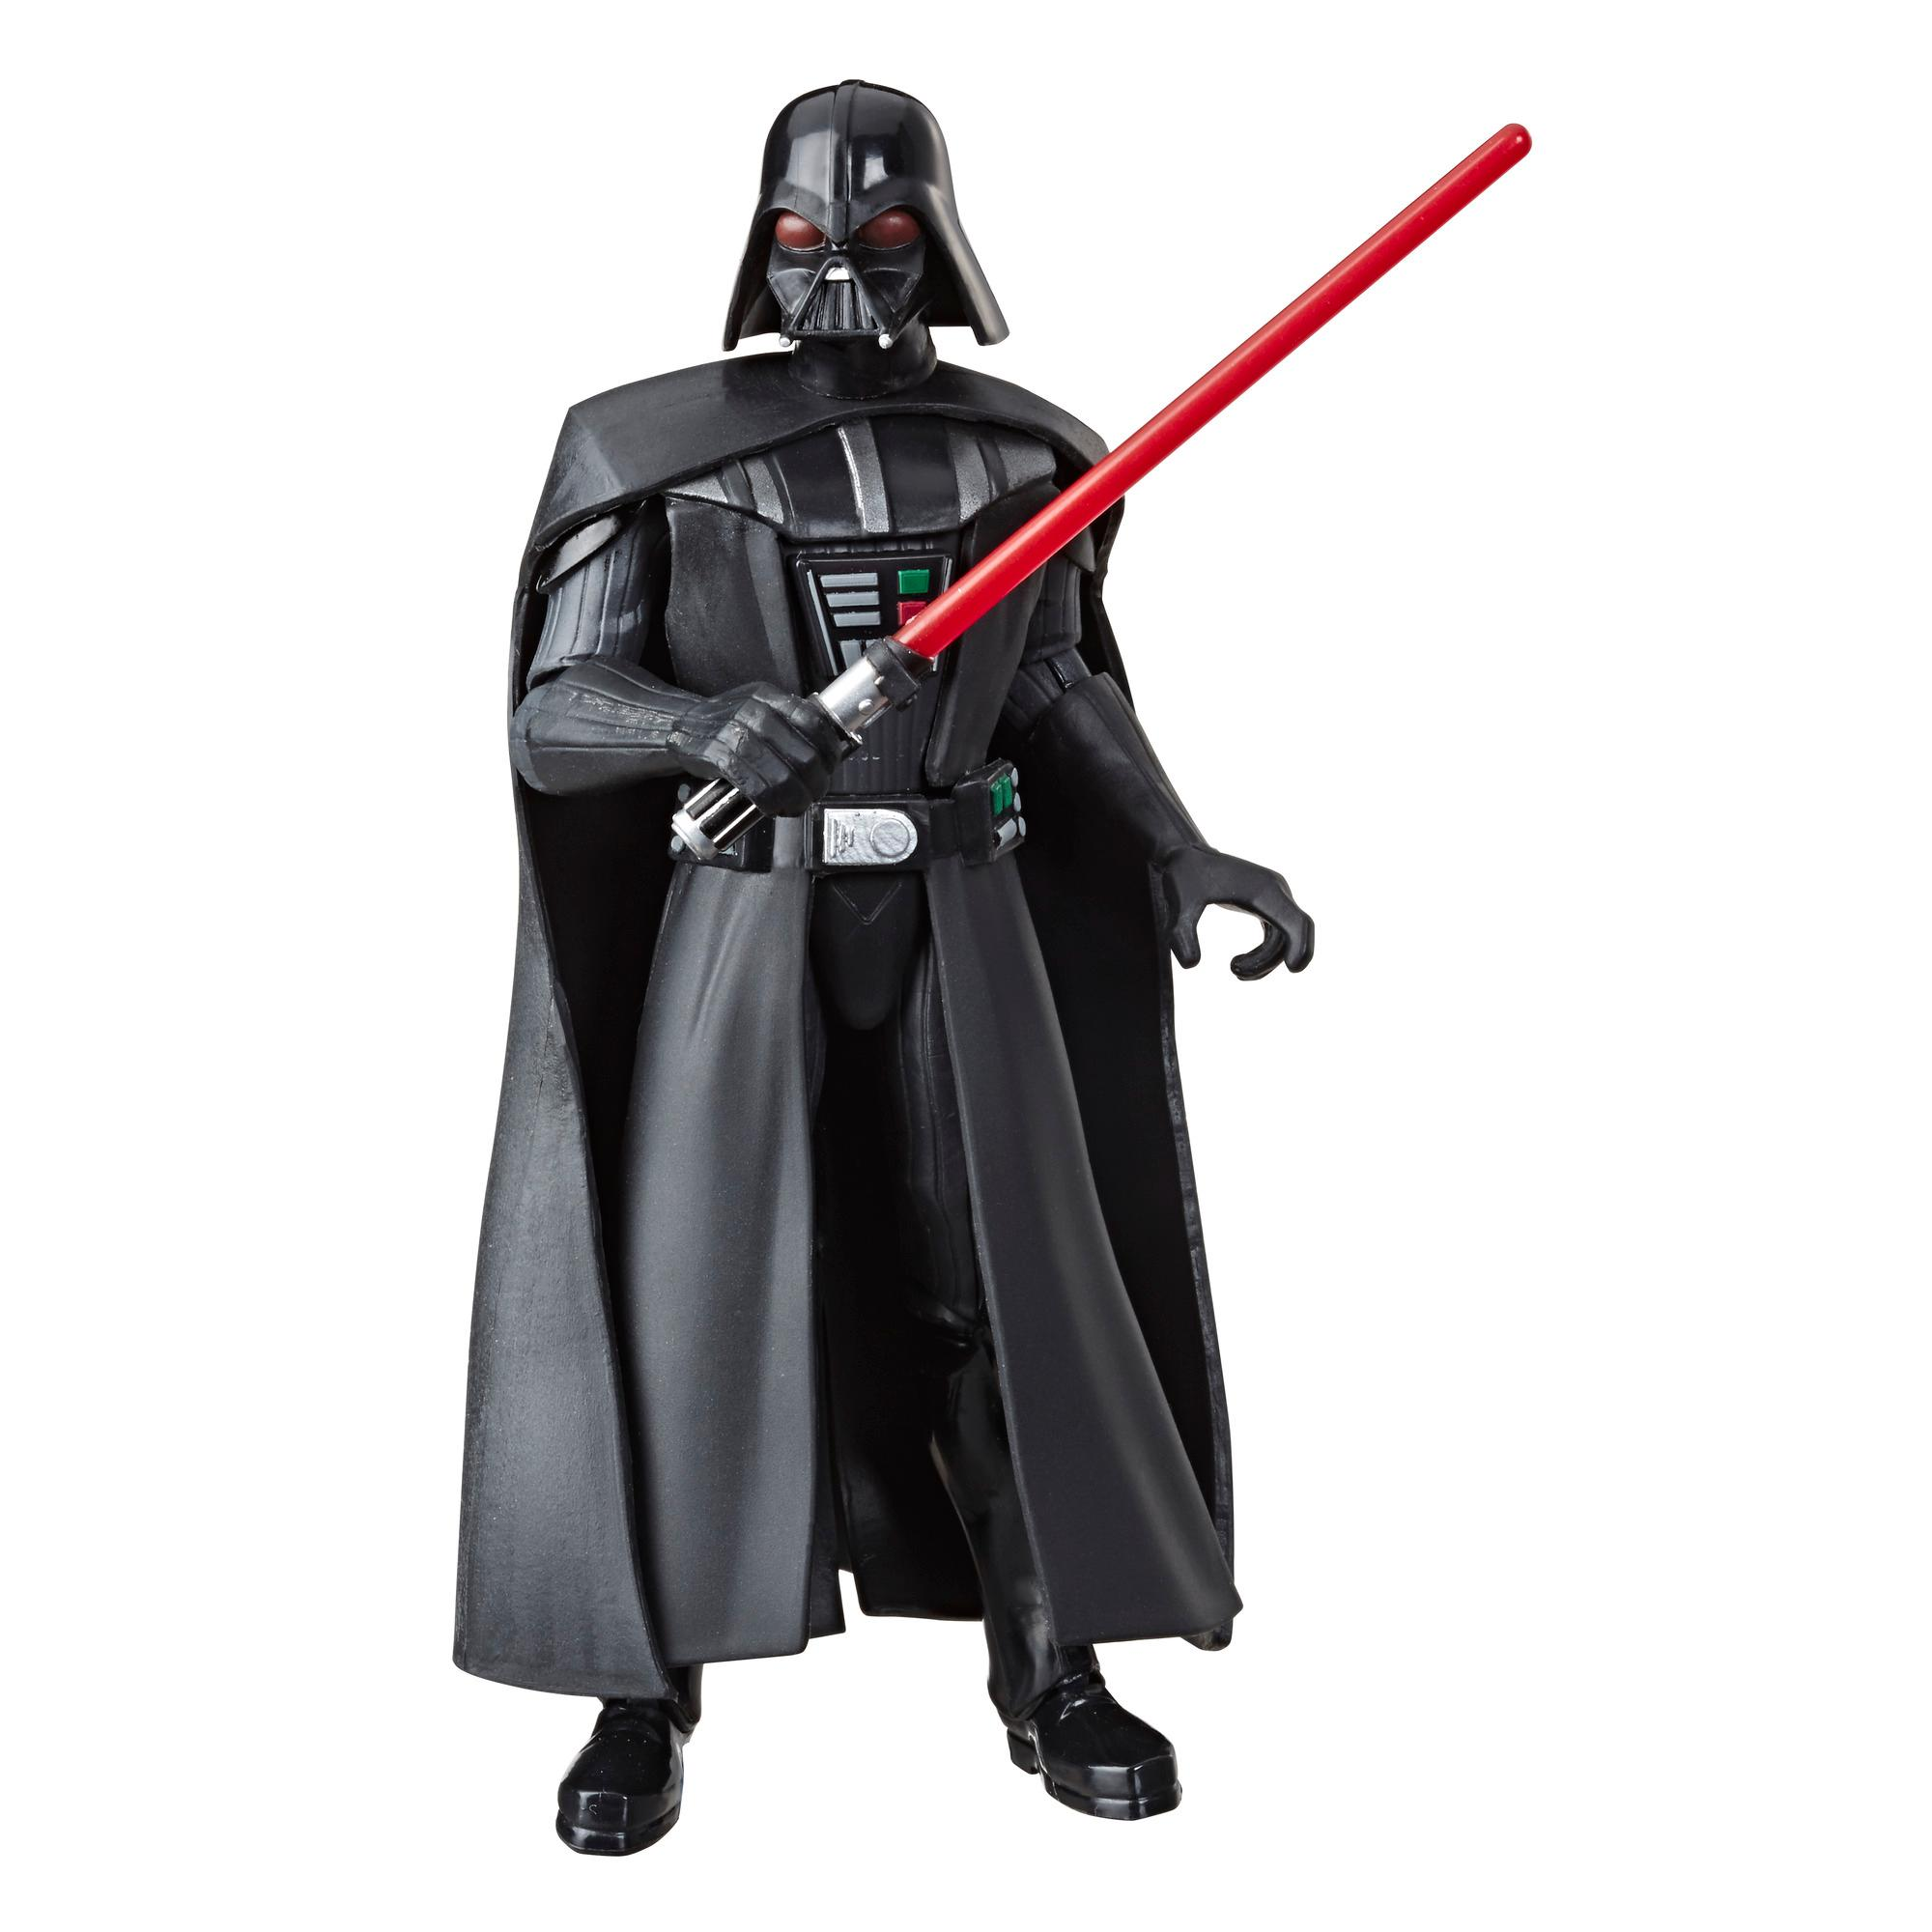 STAR WARS FIGURAS PERSONAGENS EPISÓDIO 9 DARTH VADER